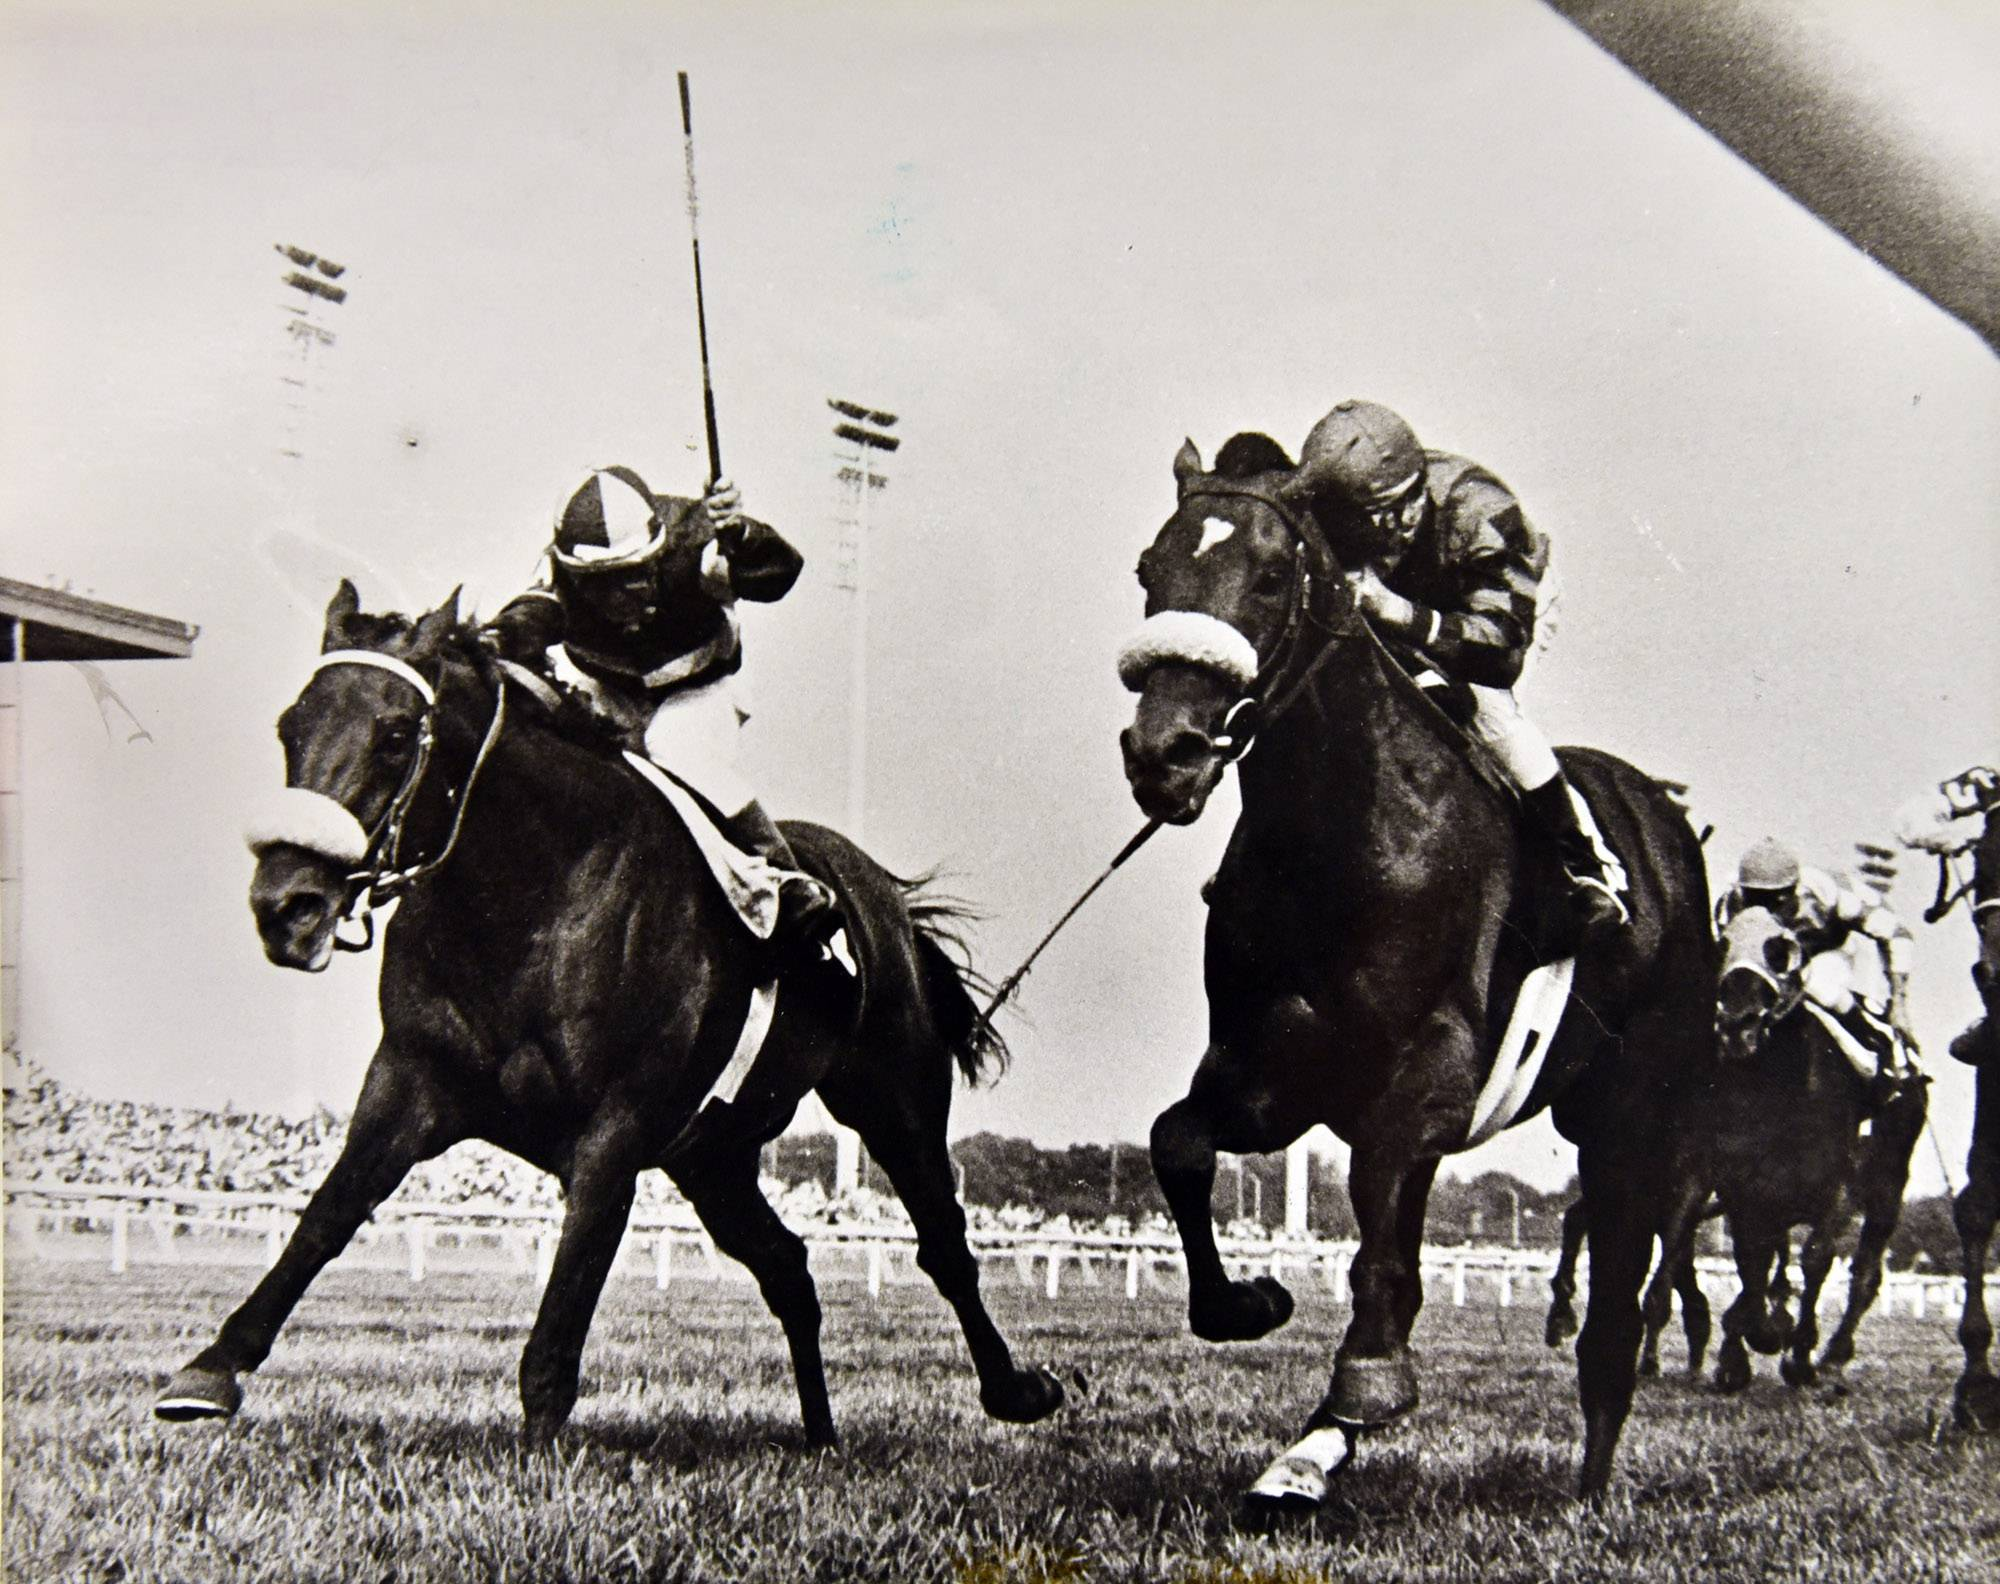 Legendary racehorse John Henry wins the first Budweiser Million in 1981 at The Arlington International Racecourse.